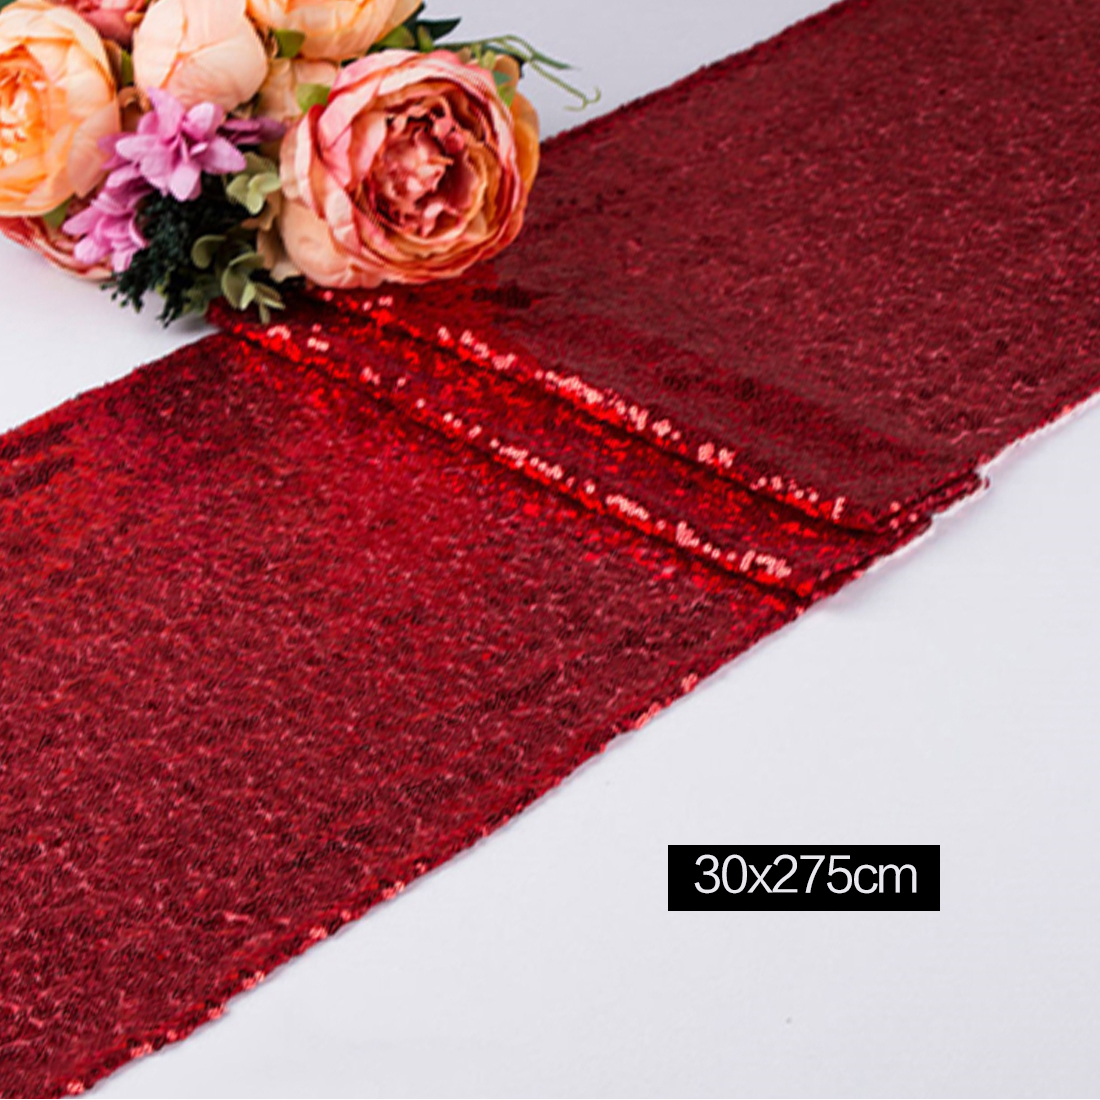 1pc Sequin Table Runner Wedding Party Decorations Gold Silver Rose gold Champagne chemin de table